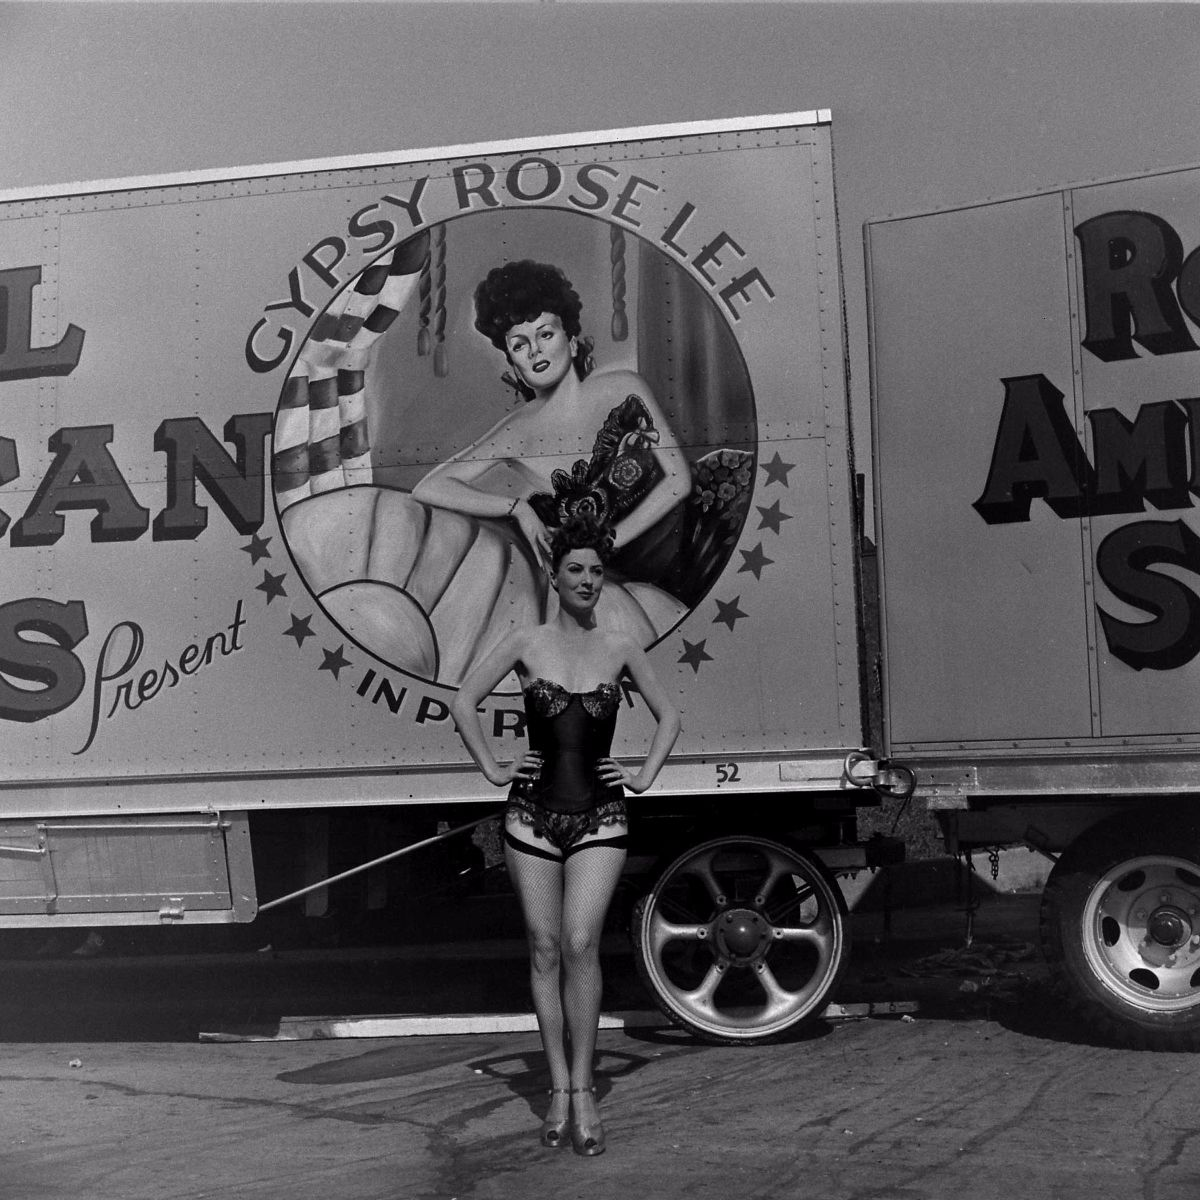 Gypsy Rose Lee in Memphis, Tenn., 1949.